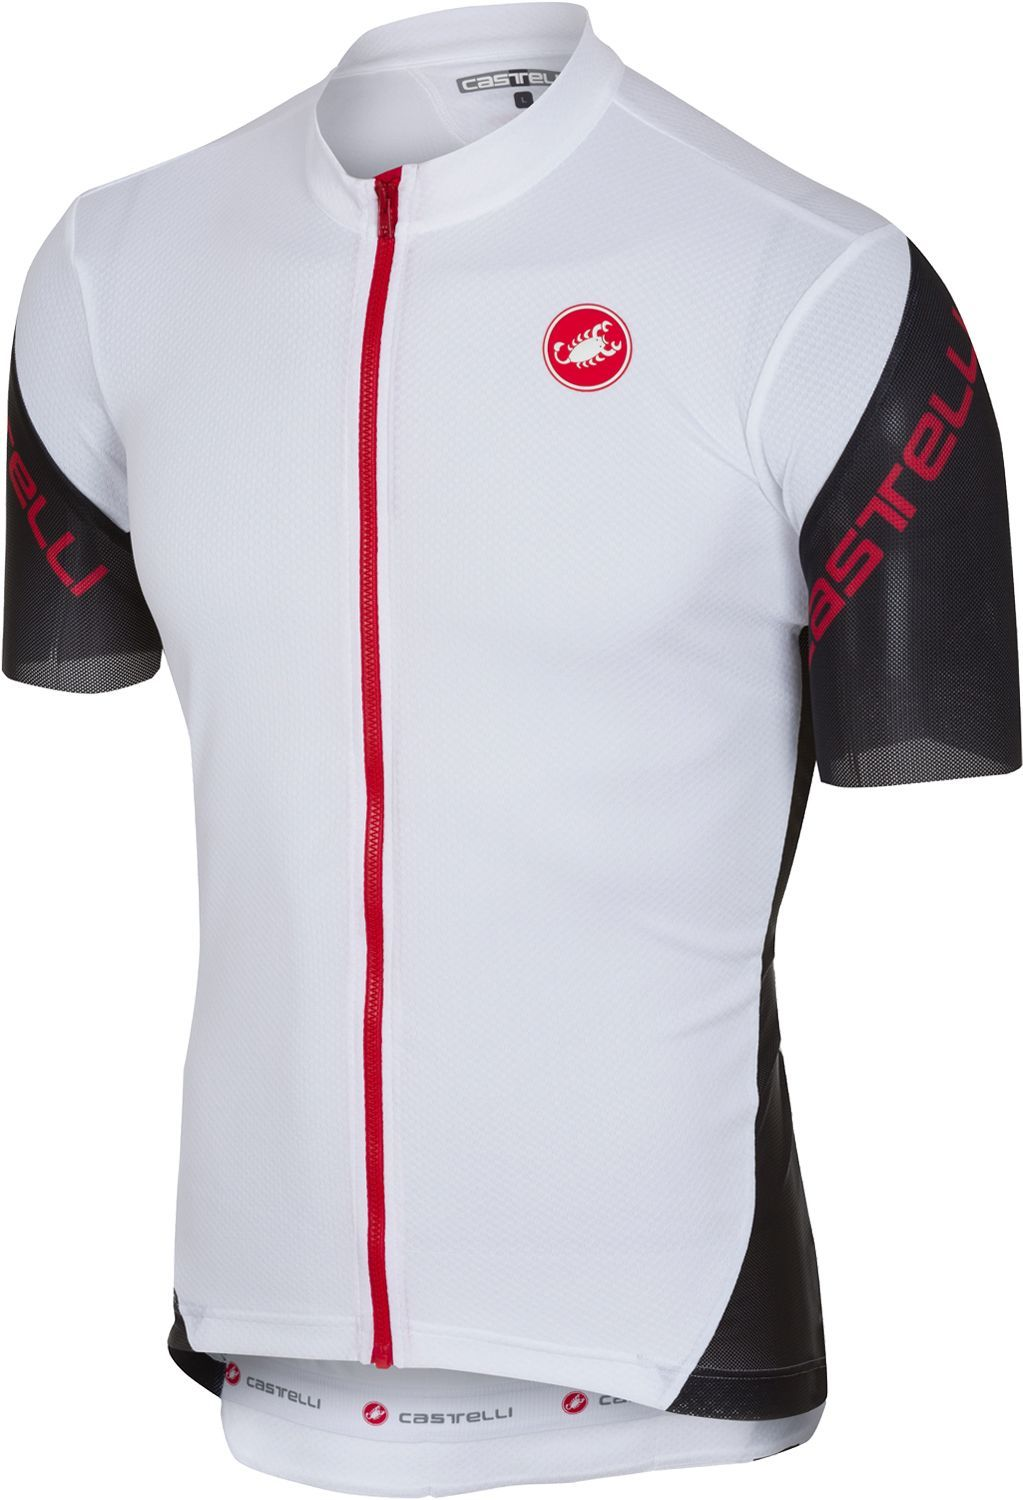 Castelli ENTRATA 3 short sleeve cycling jersey white. Previous d887a5d9c